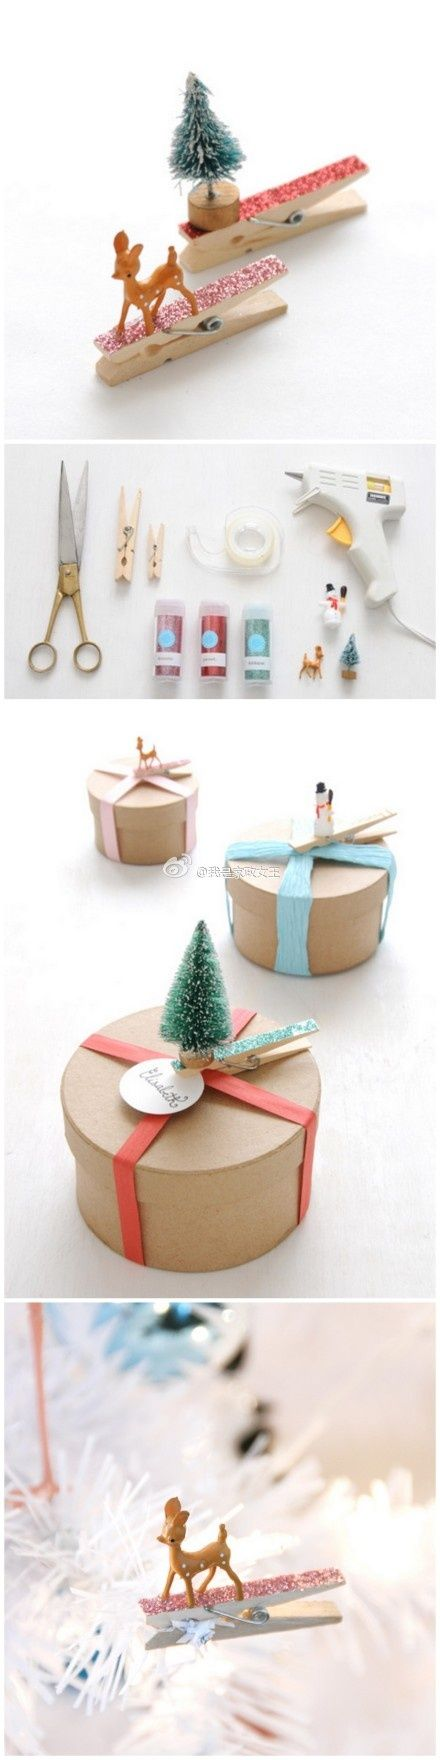 Clothespin gift ornament #Gift Ideas #Ornaments